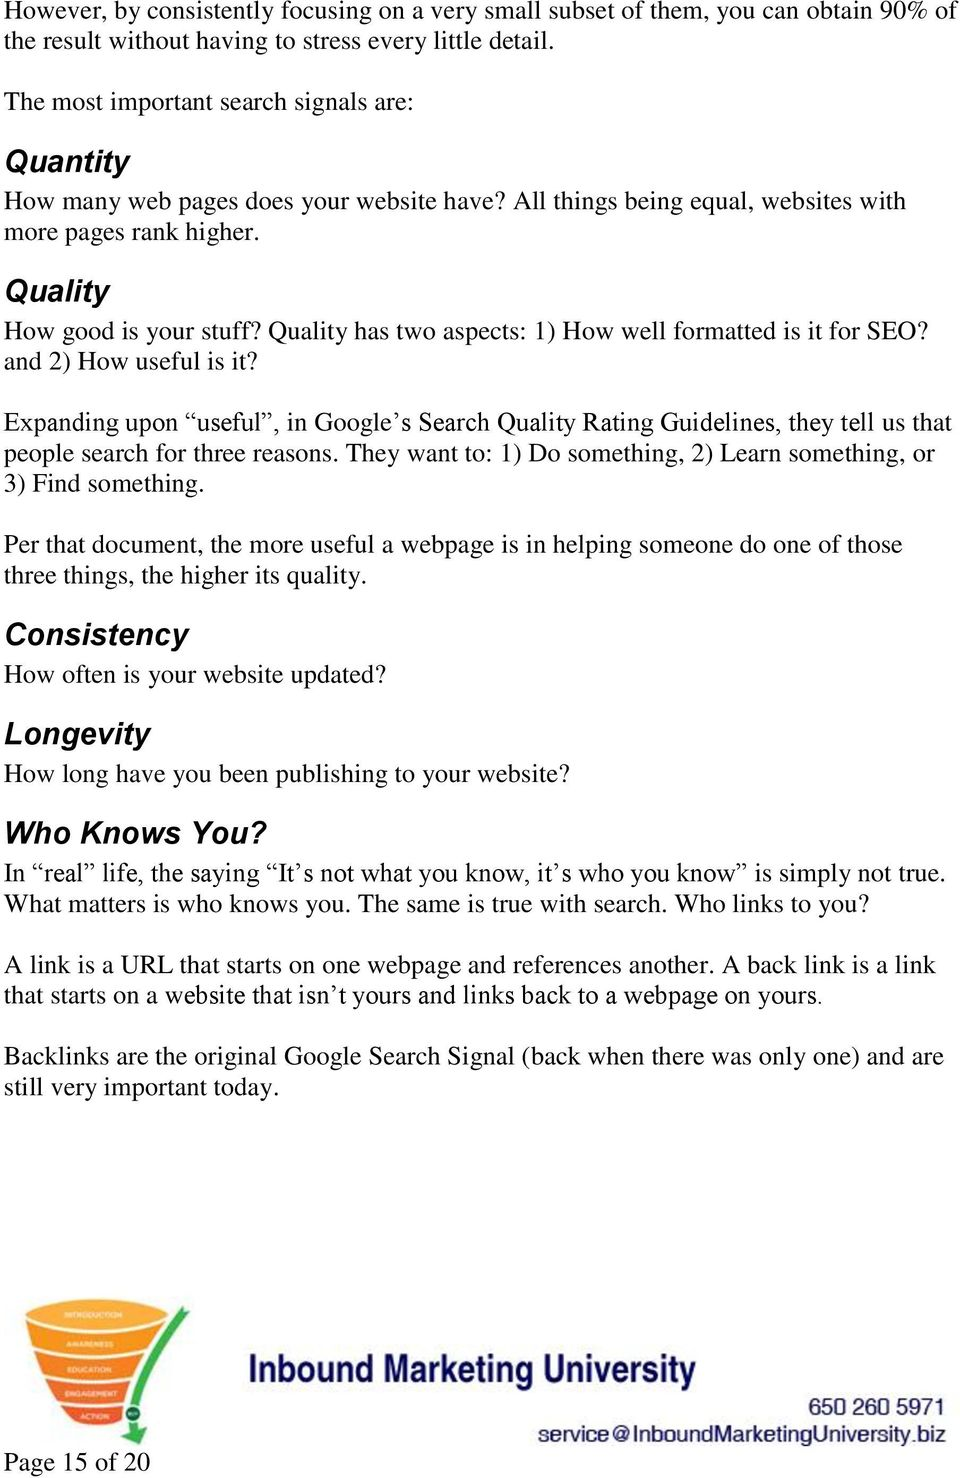 Quality has two aspects: 1) How well formatted is it for SEO? and 2) How useful is it?